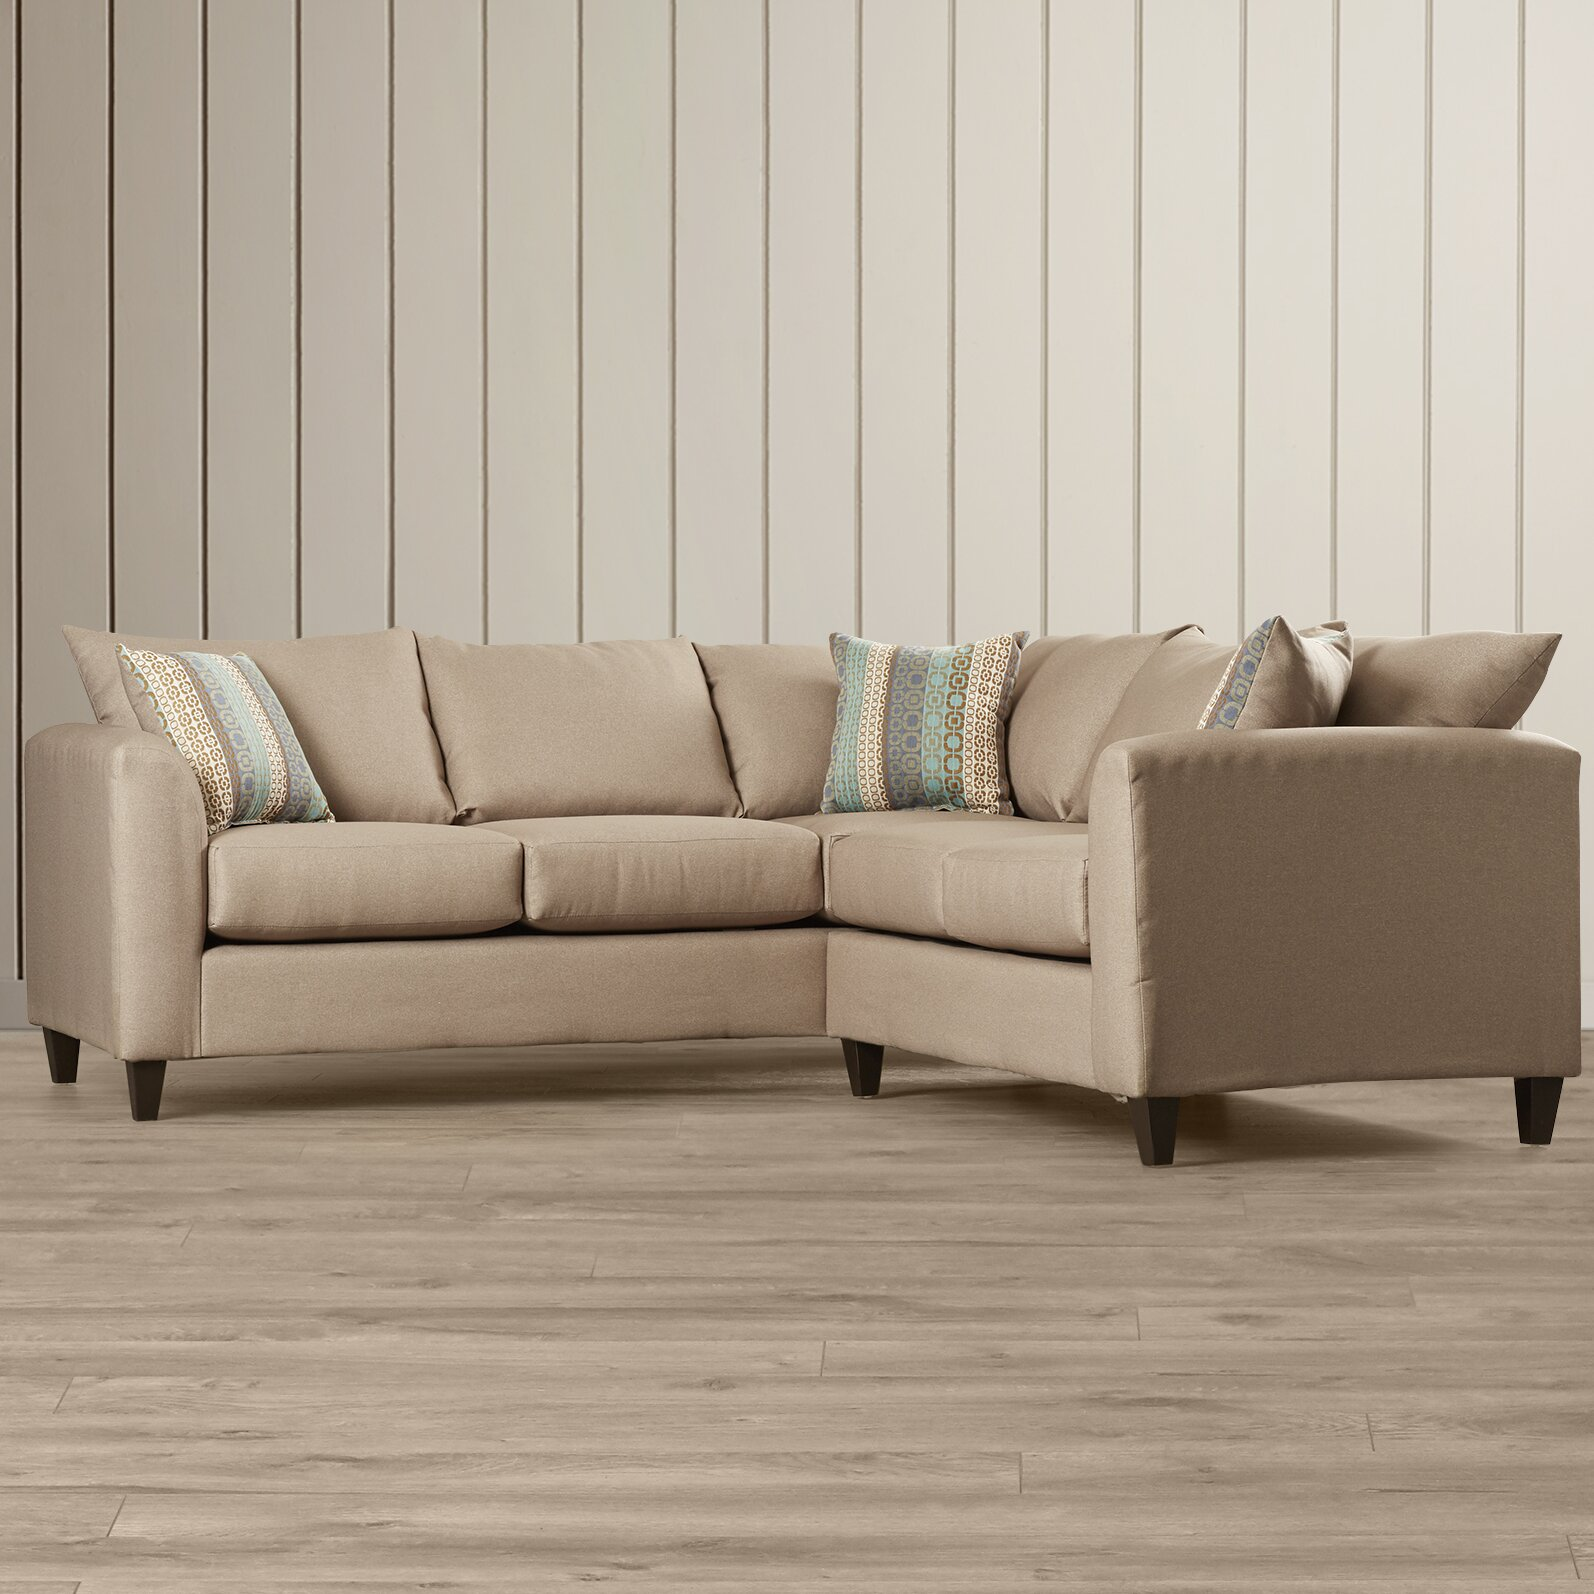 Beachcrest Home Serta Upholstery Sectional Reviews Wayfair : serta upholstery sectional - Sectionals, Sofas & Couches